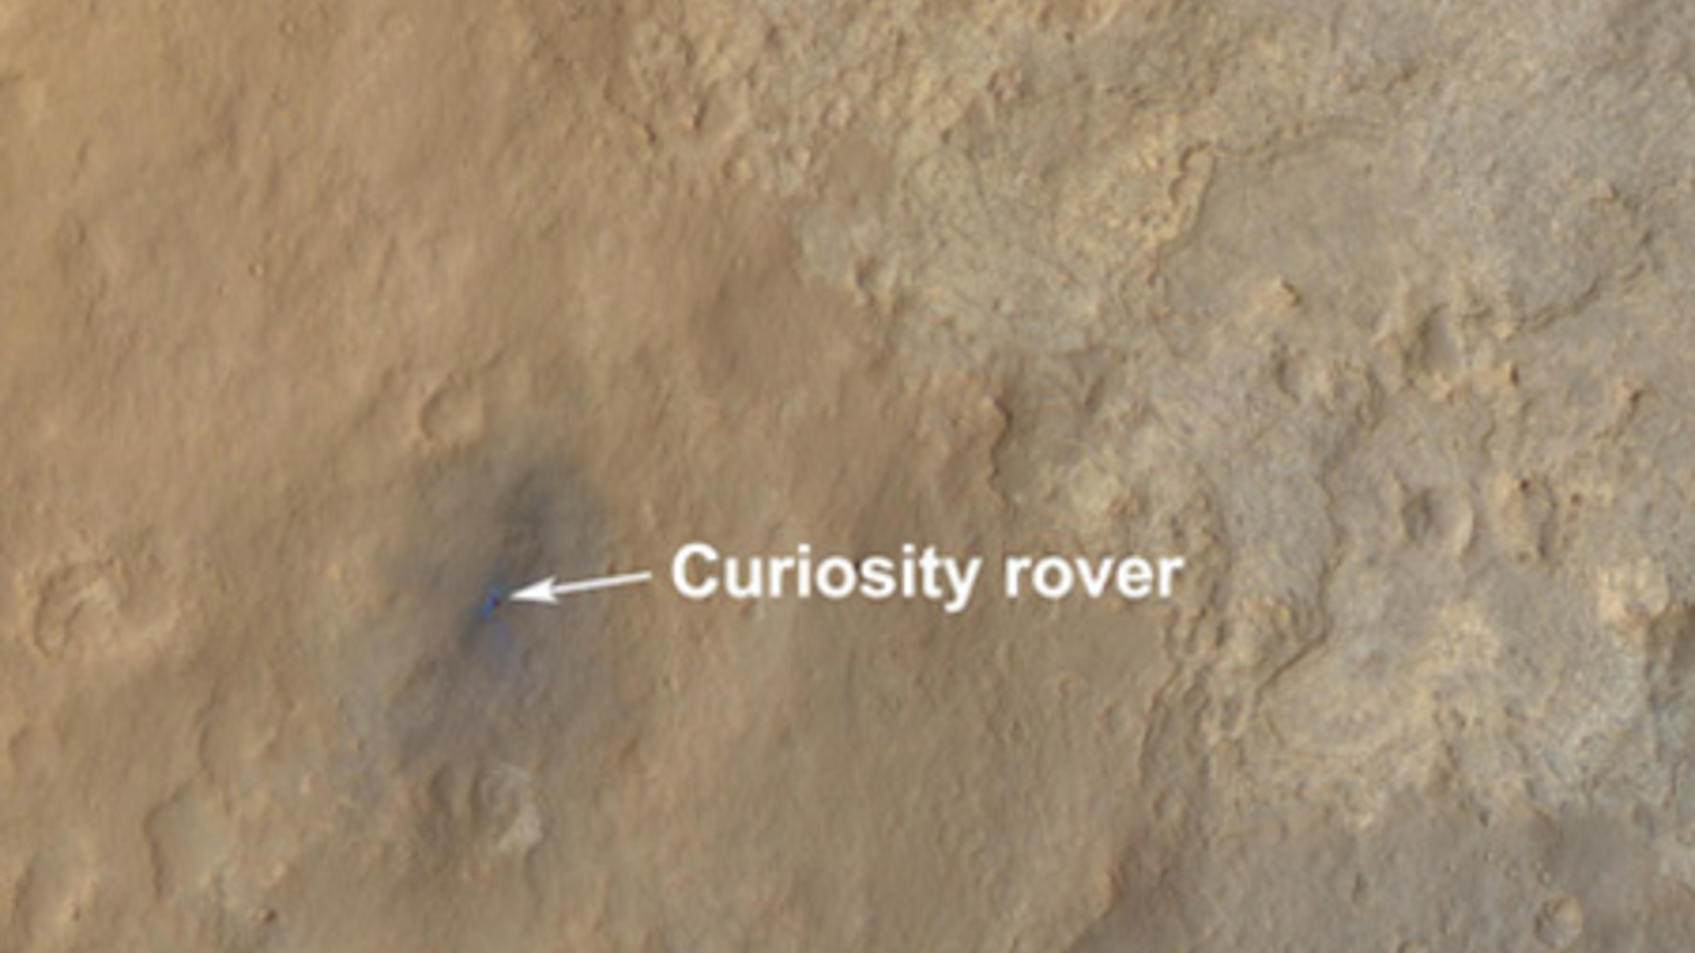 mars curiosity rover technical drawing - photo #34